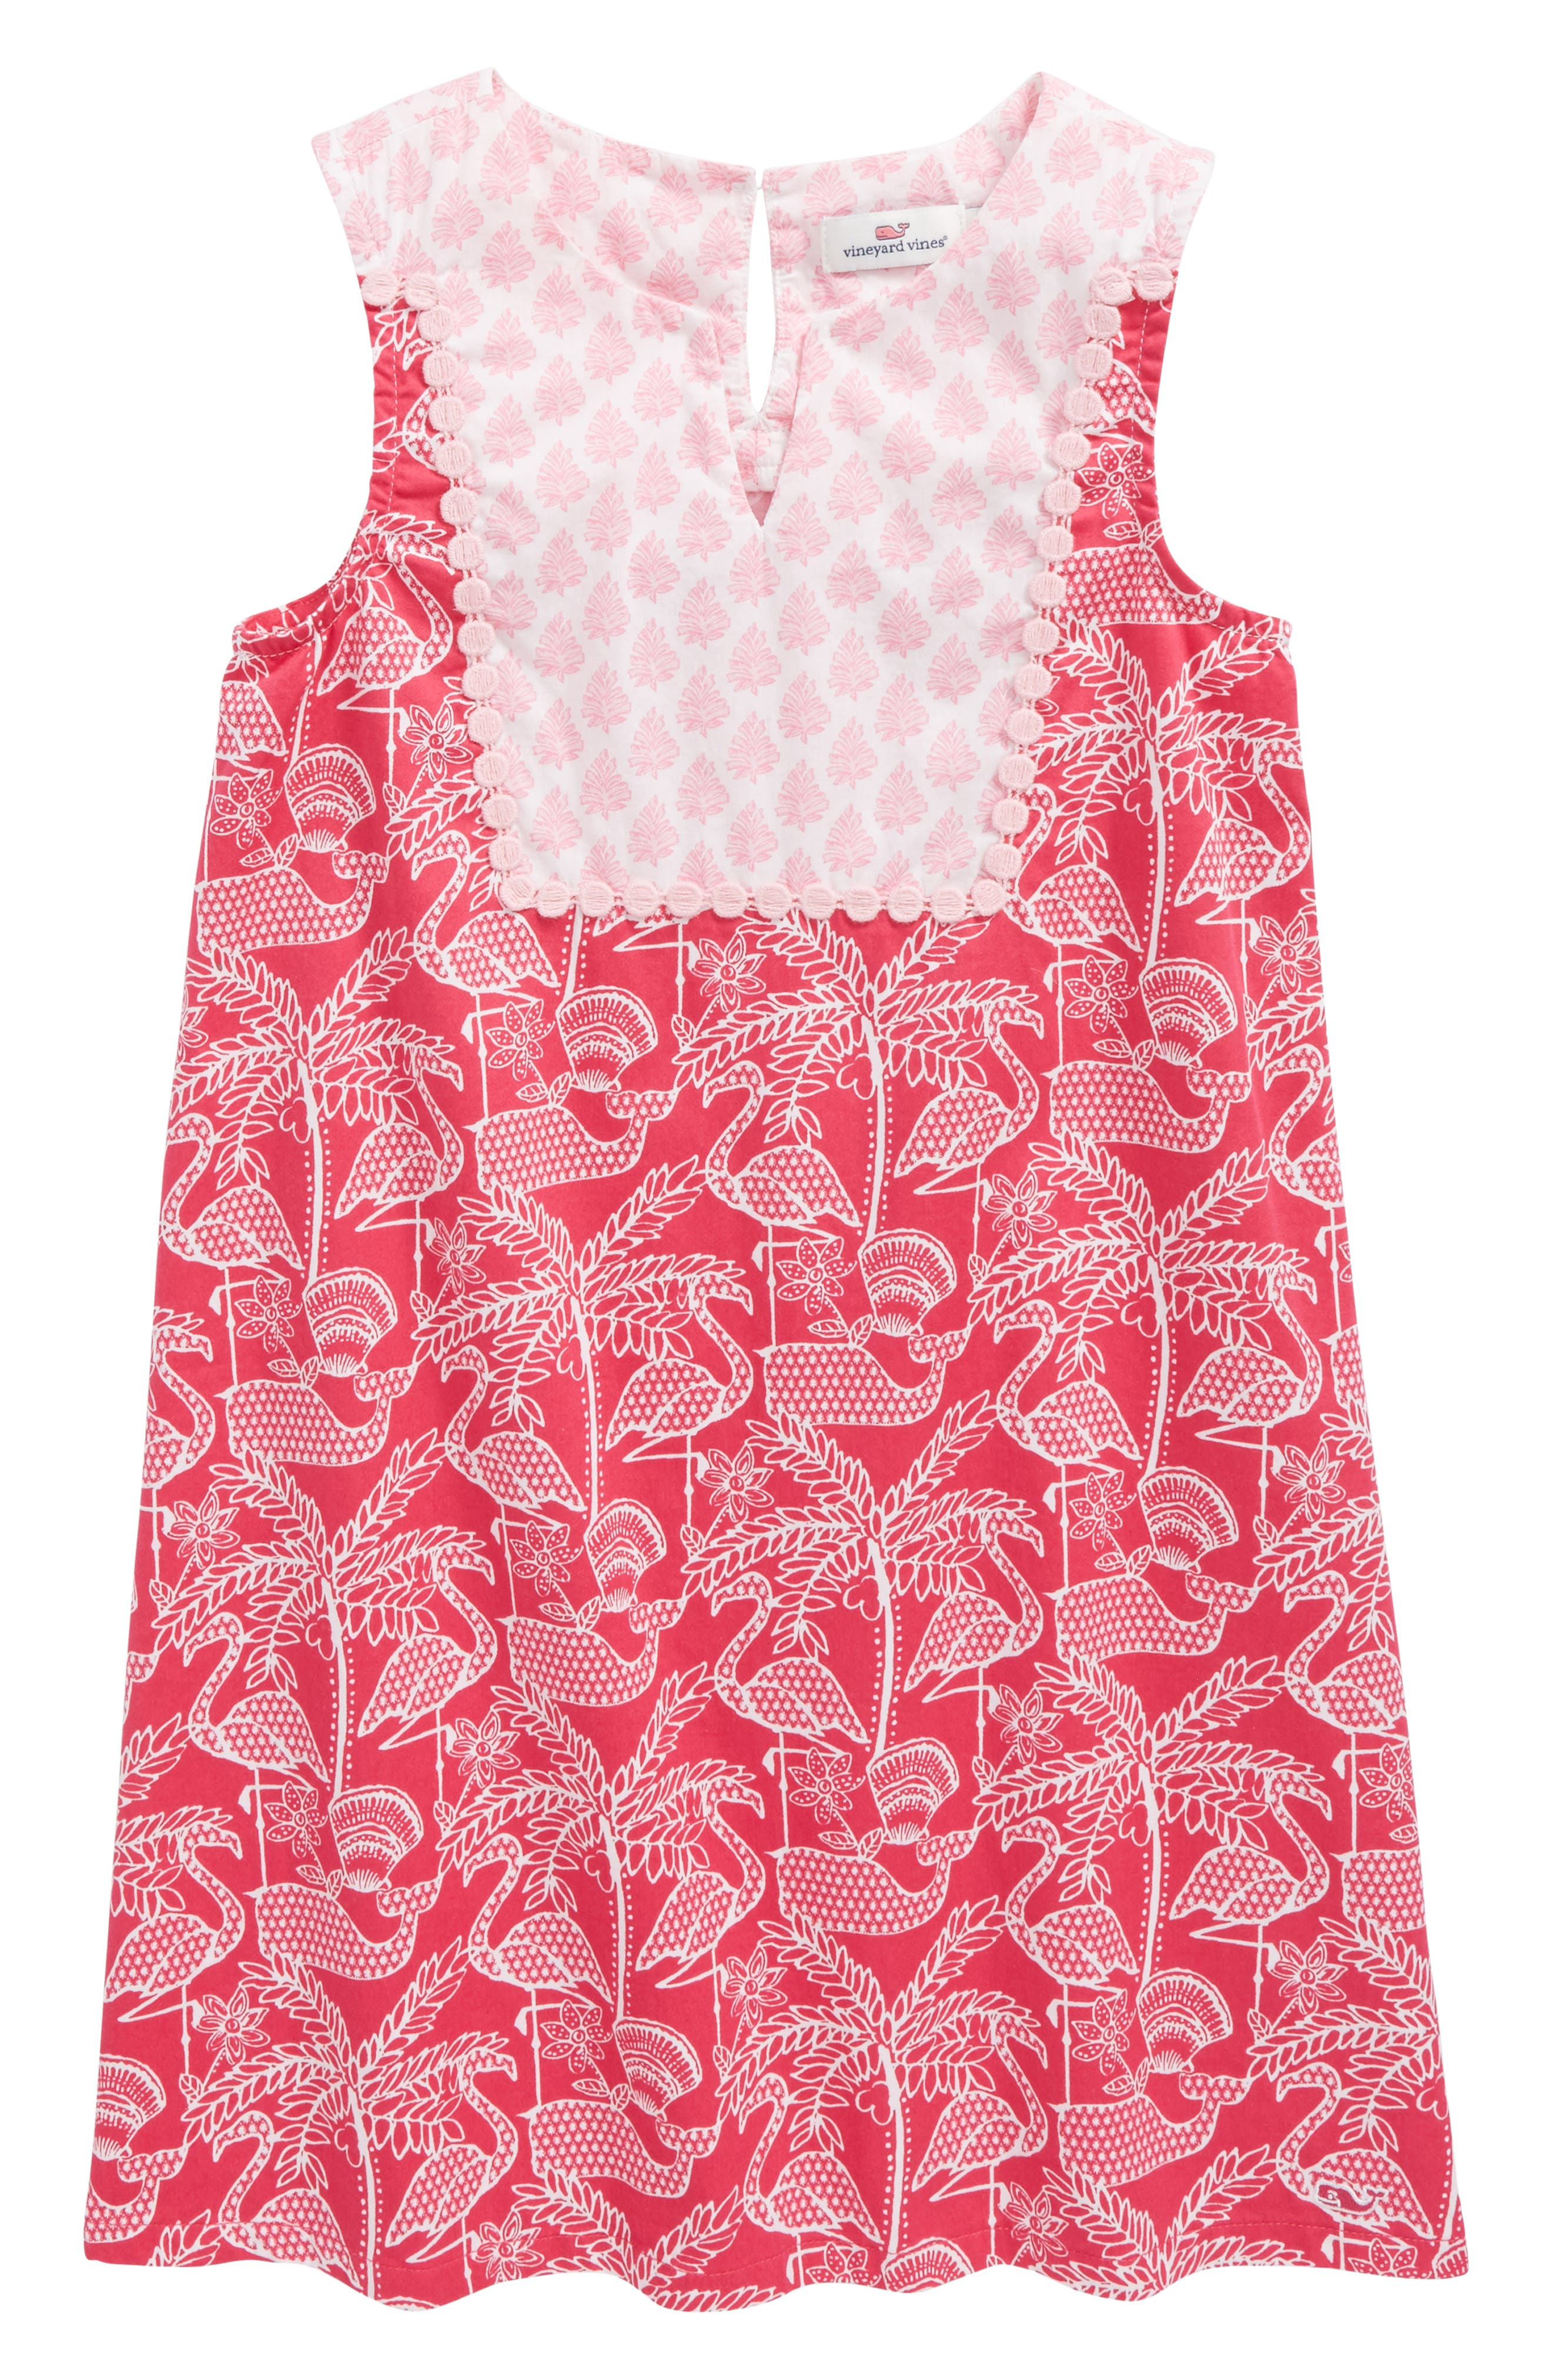 Flamingo Print Shift Dress,                             Main thumbnail 1, color,                             Rhododendron